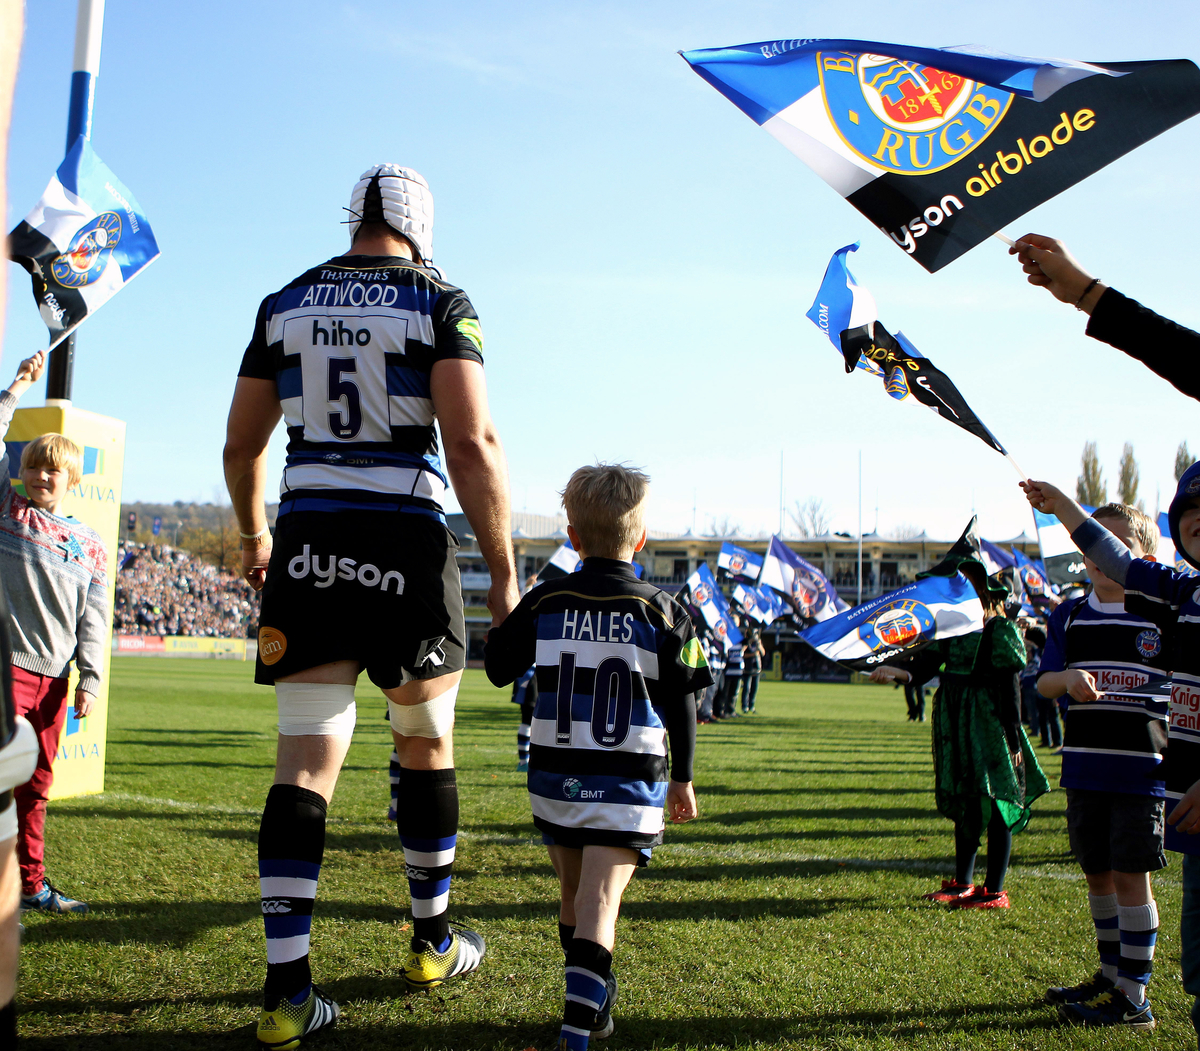 Bath Rugby 2016/17 Premiership Fixture Schedule Announced